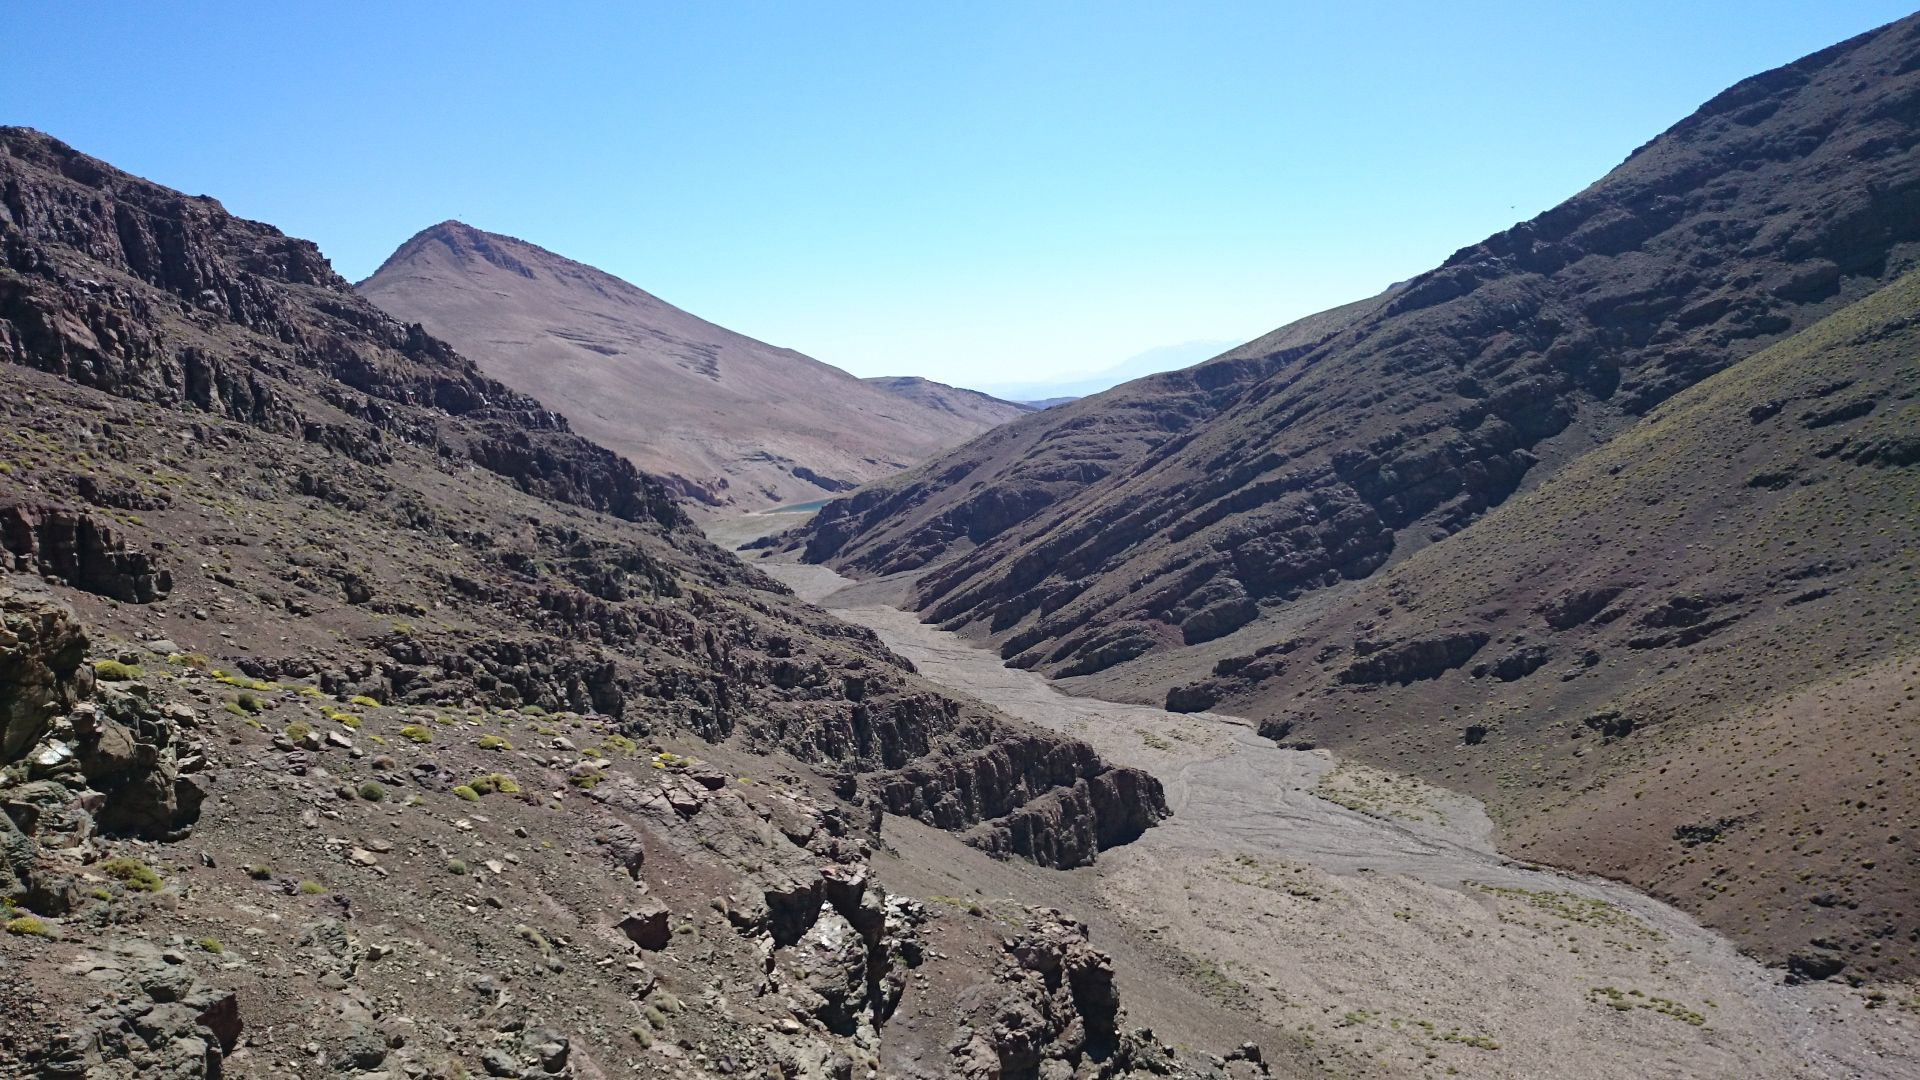 Day 6 - The moon AKA the descent from the Tizi-n-Tamadla pass & the dried-up river bed across which we need to ride (boulders!) Looking west, with lake Tamda in the distance, & flanks of Jbel-n-Anghomar on the right.  © Shaun Grey